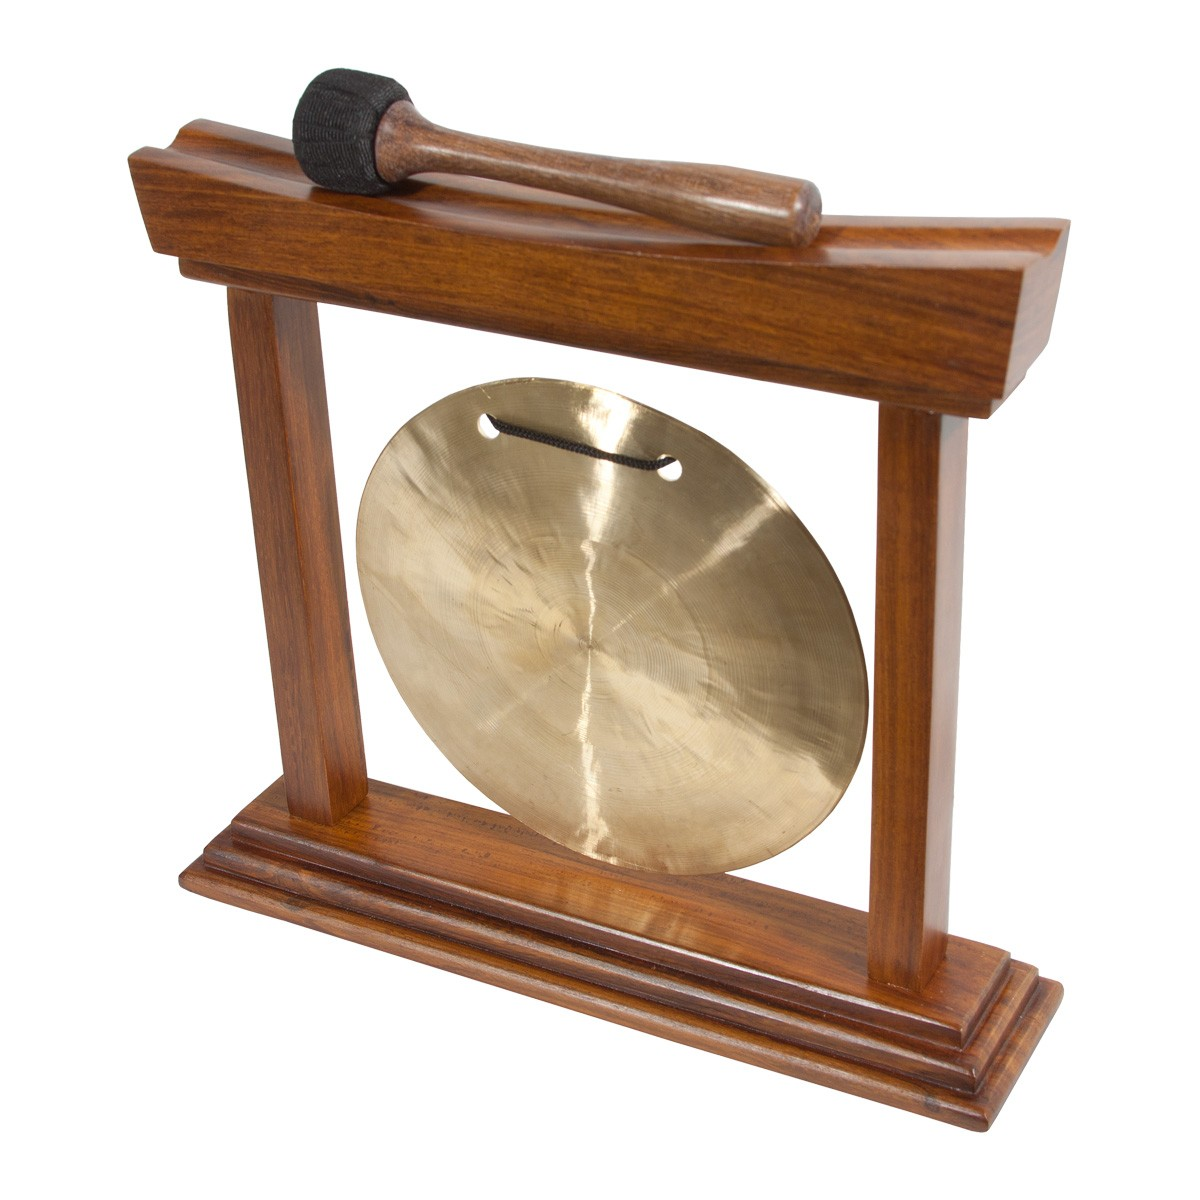 DOBANI 6' Wind Gong & Curved Stand